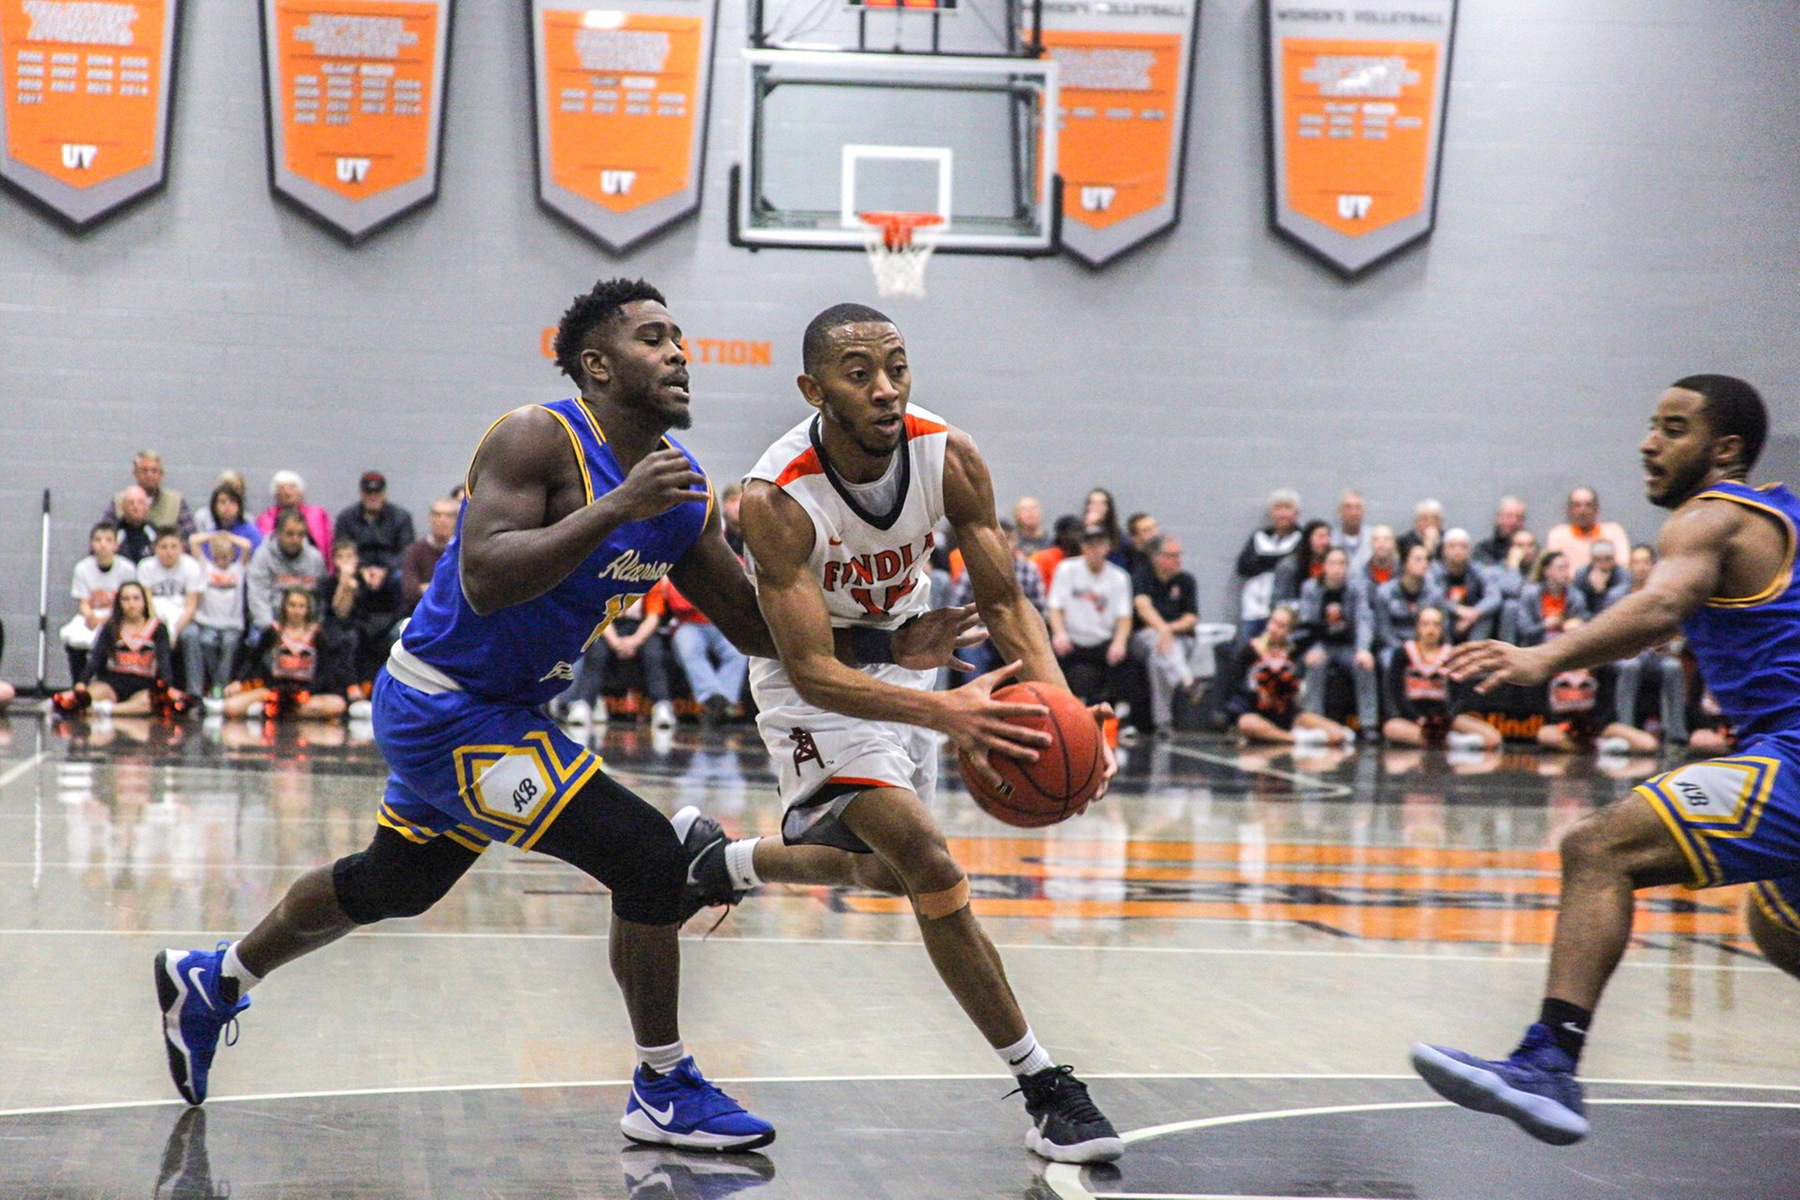 Oilers Win 8th Straight | Beat Battlers 79-72